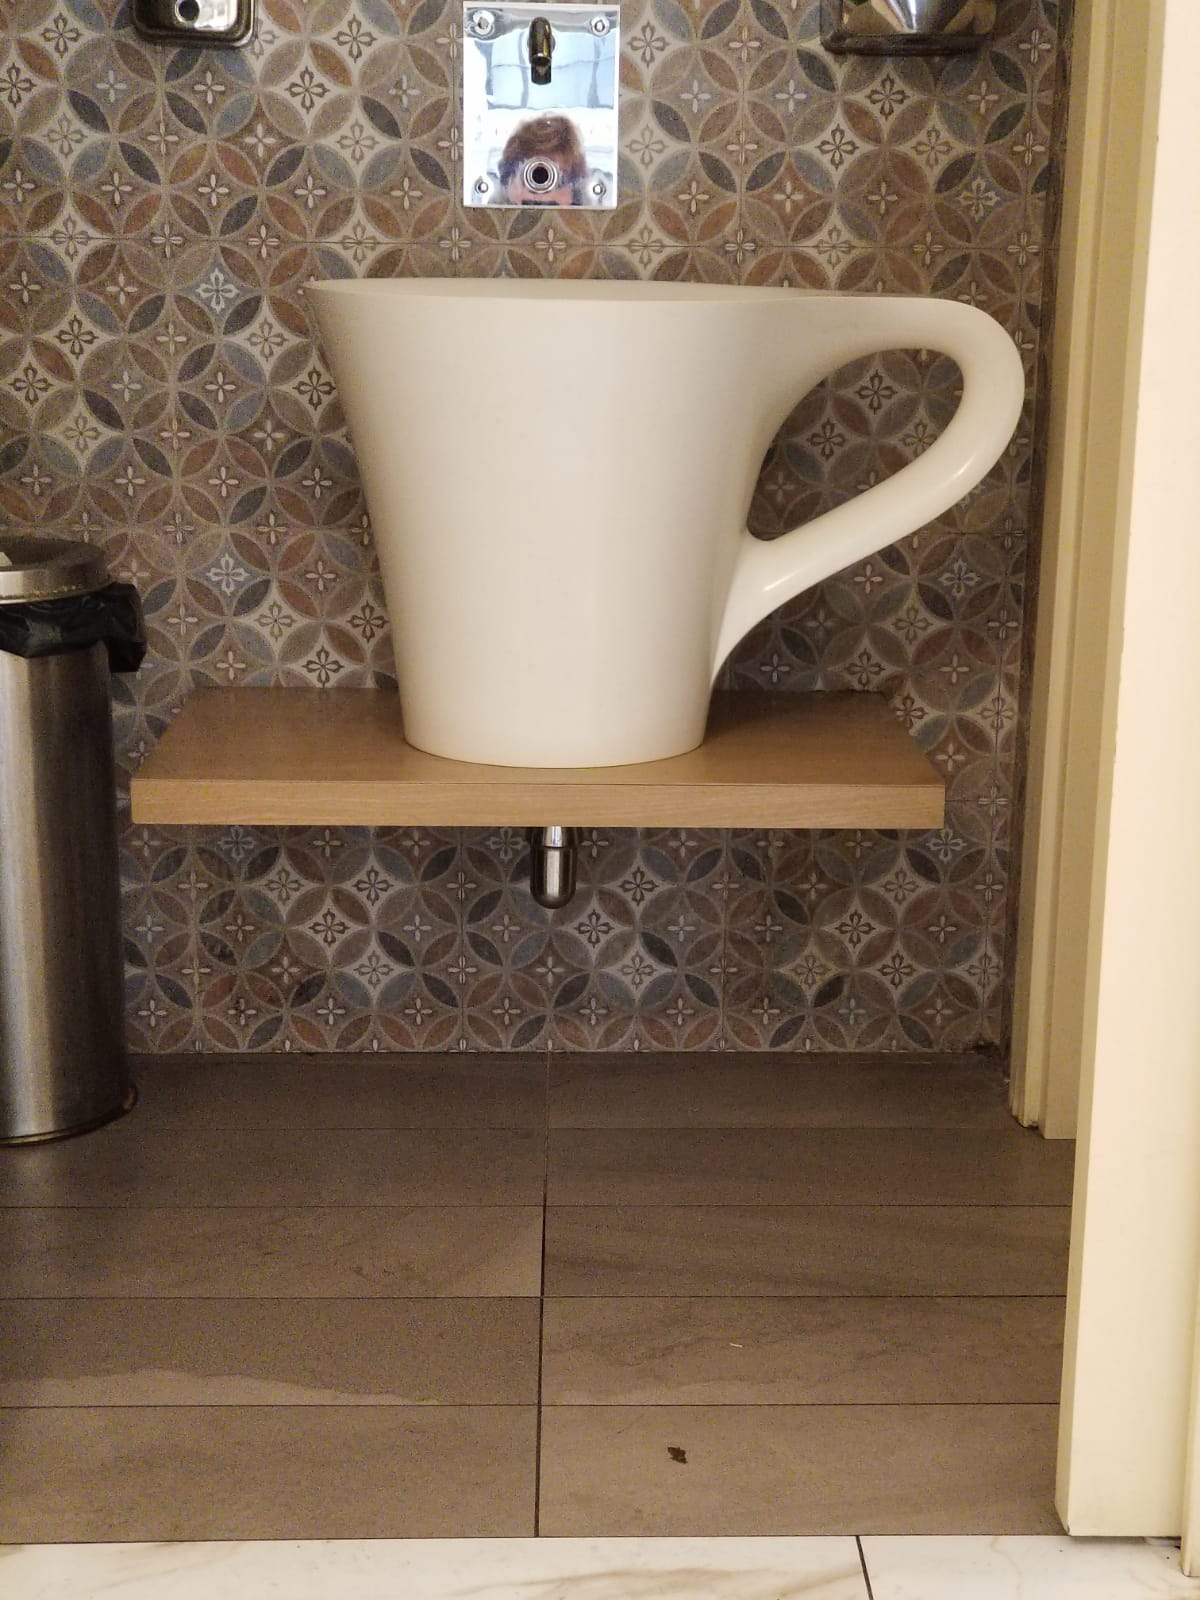 A Creative Sink For A Sacramento Remodel